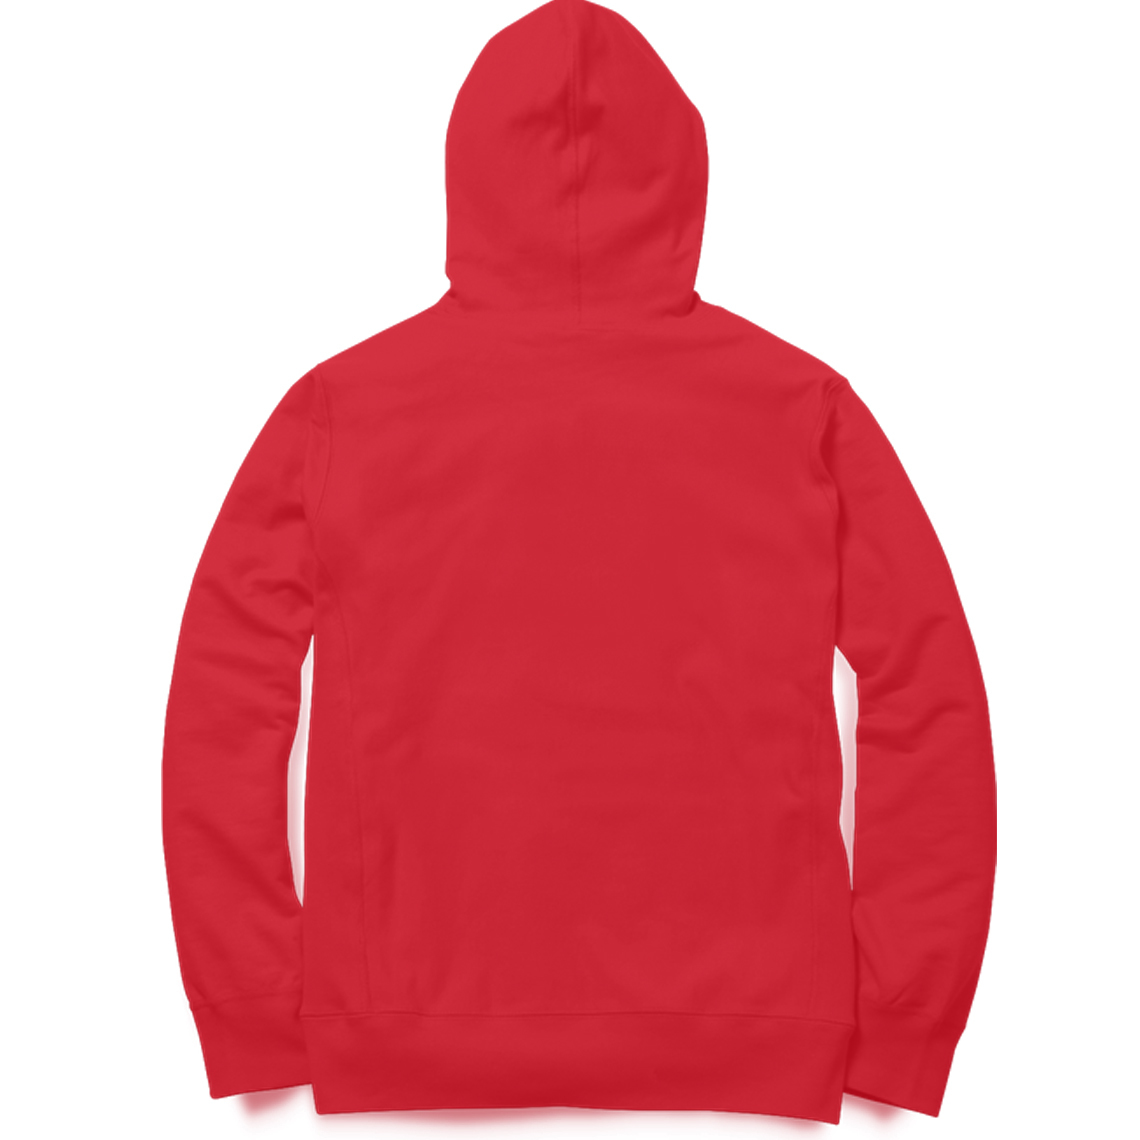 the taj mall hoodie red